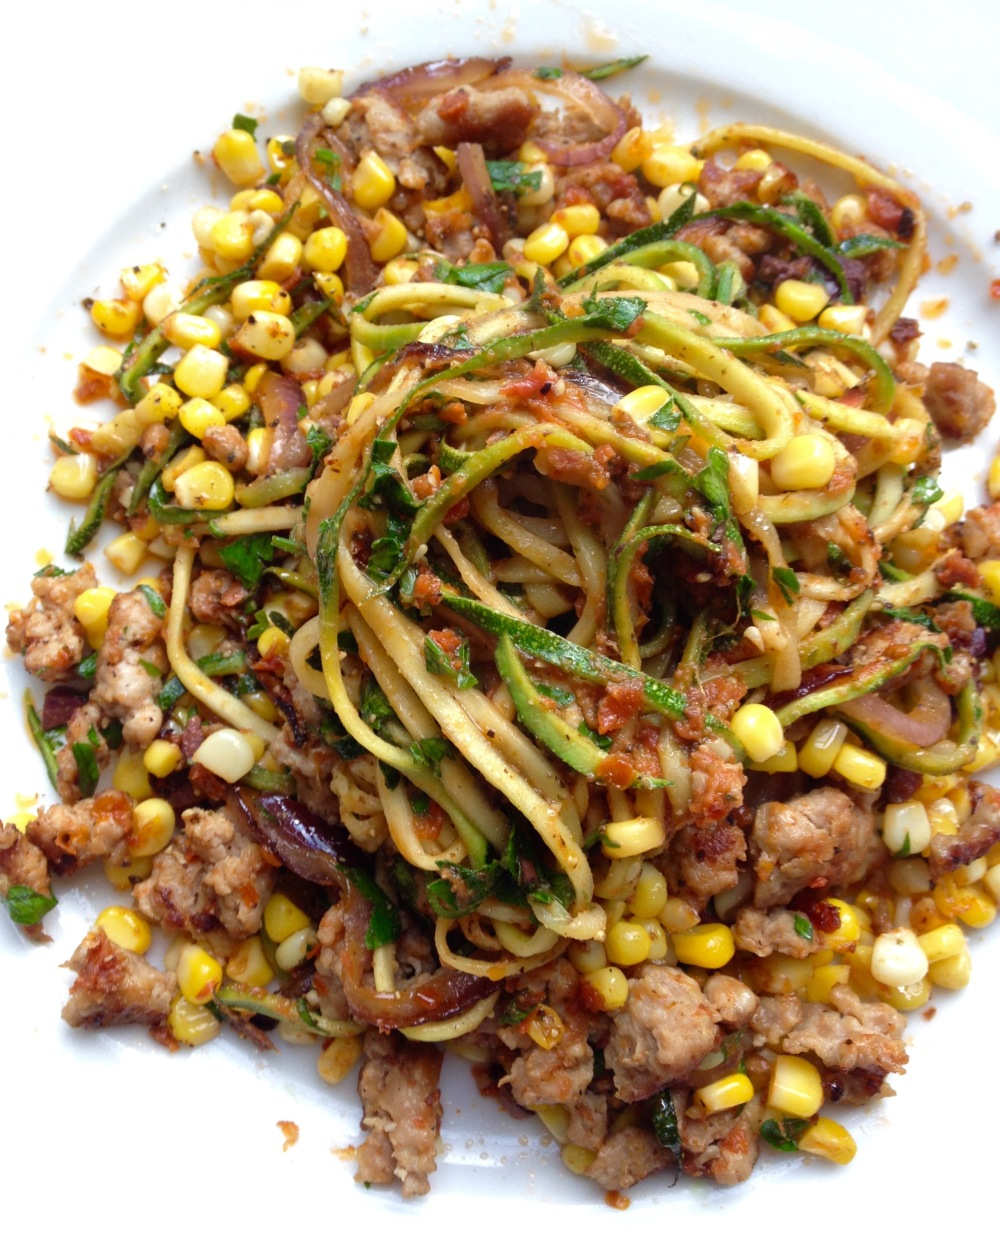 cow crumbs, gluten free, dairy free, paleo, zucchini noodles, sun-dried tomato, sunflower kitchen, pesto, corn